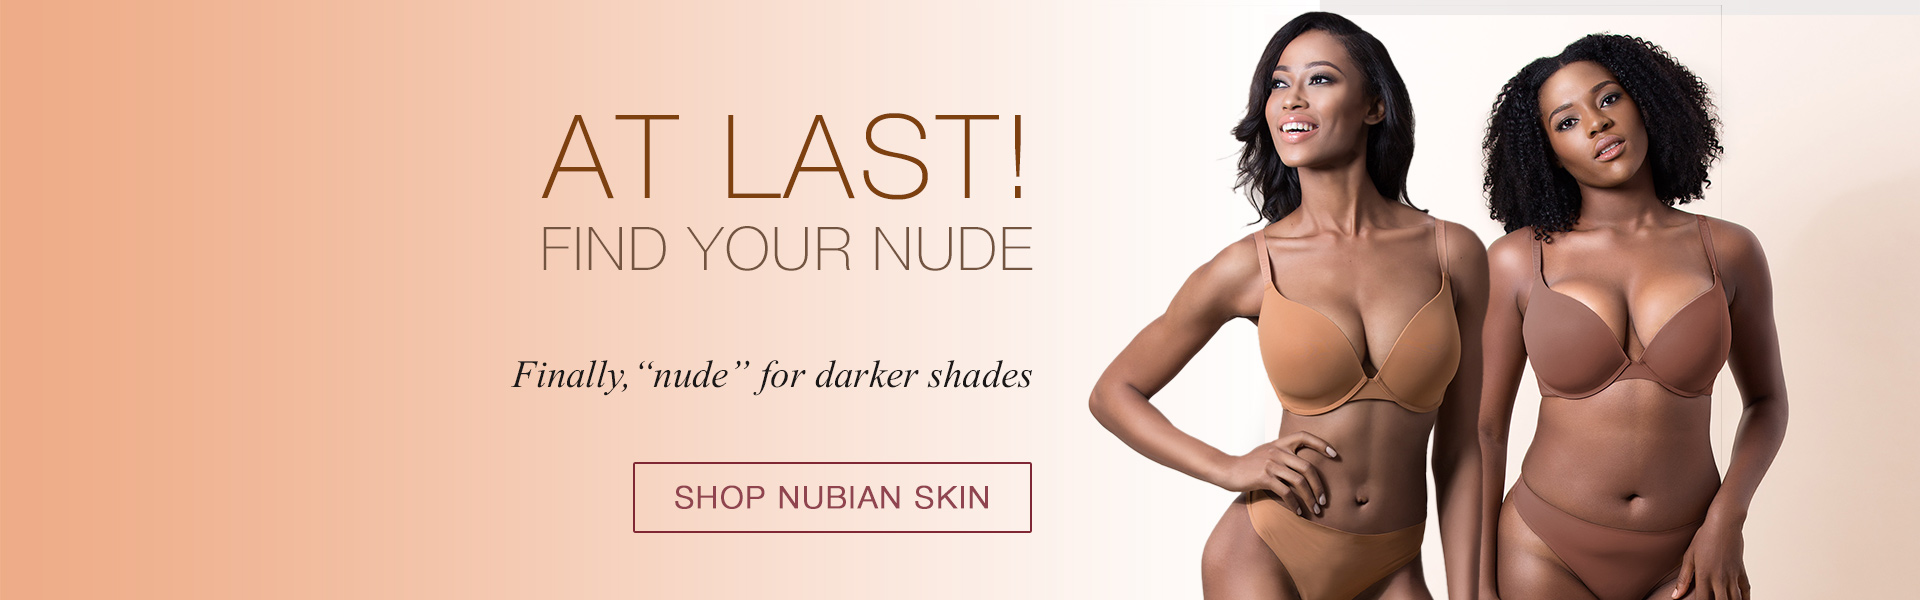 At last find your nude